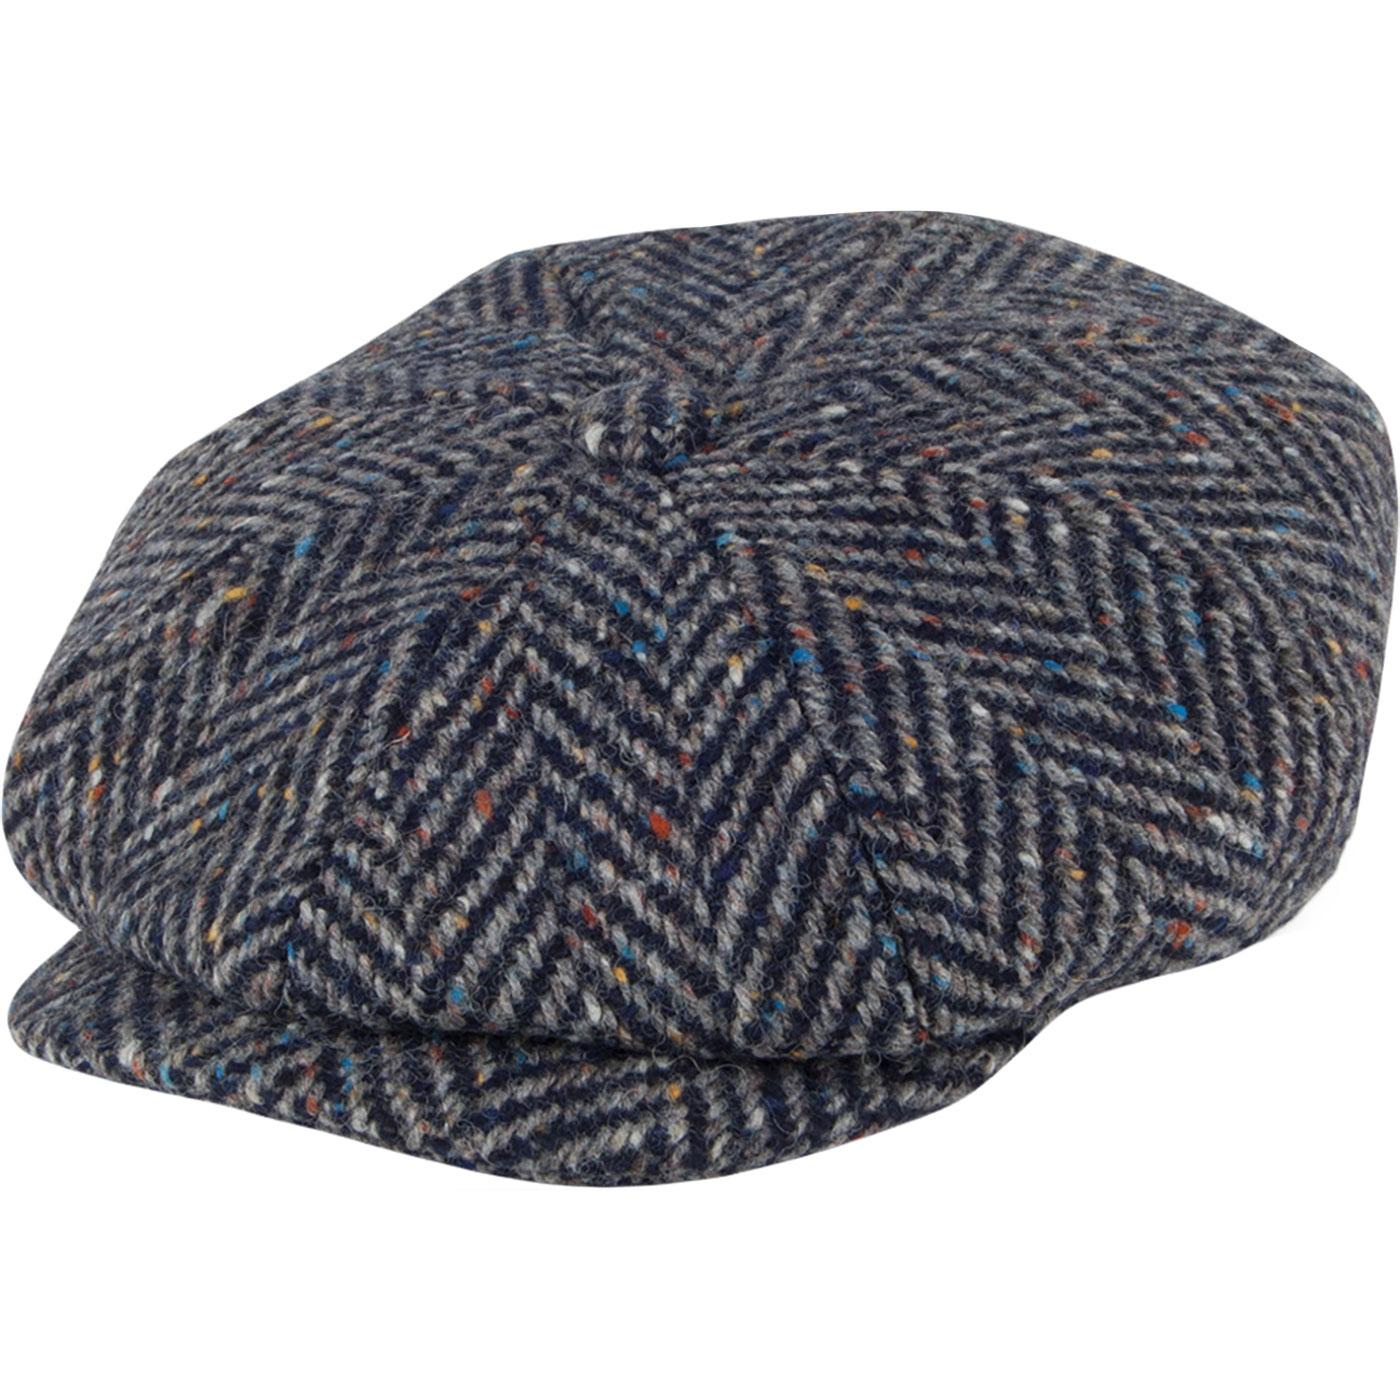 FAILSWORTH Donegal 8 Panel Magee Irish Tweed Cap